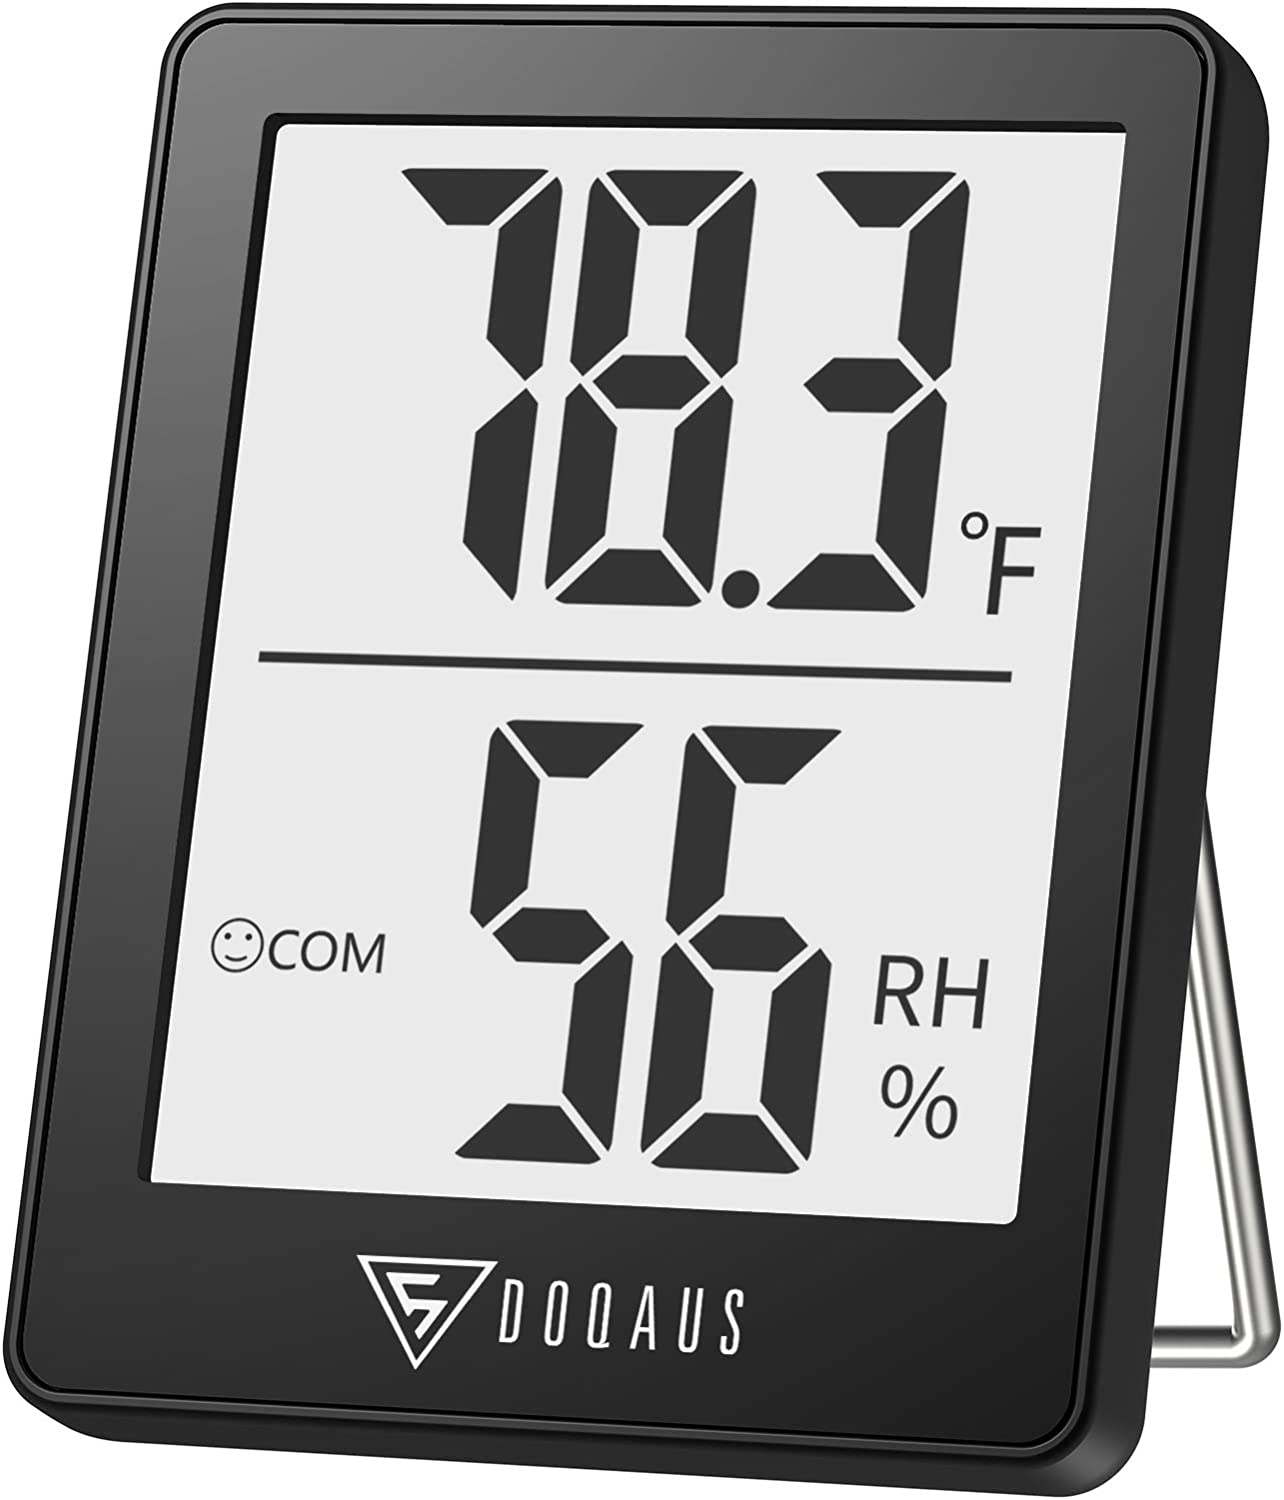 Large LCD Display Digital LCD Thermometer Asixxsix Thermometer Thermometer Hygrometer Lightweight for Home Room